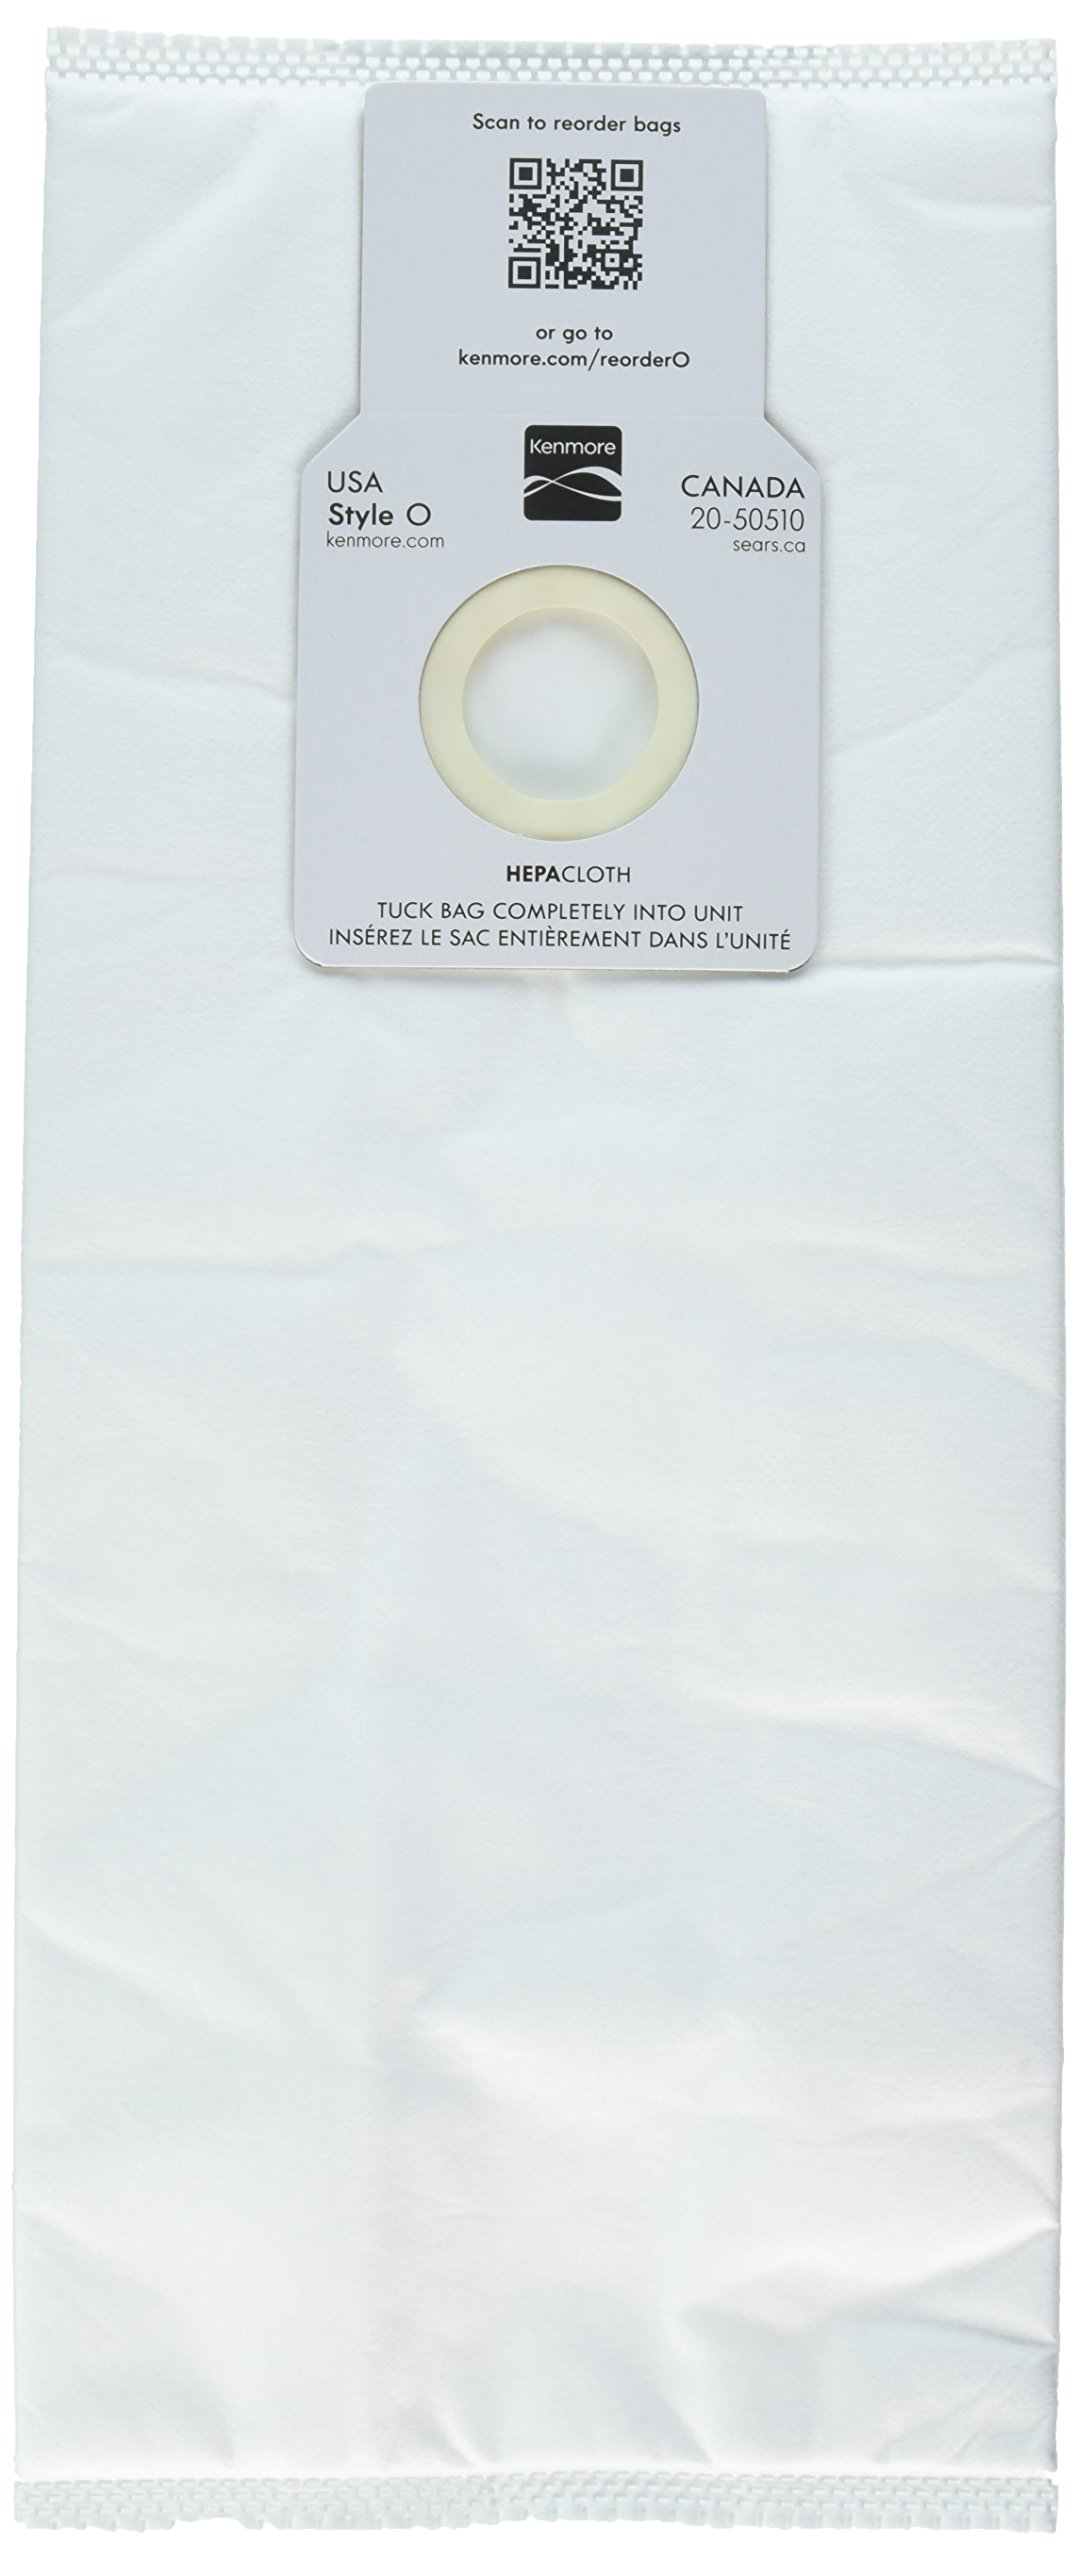 Kenmore 53294 6 Pack Type O HEPA Vacuum Bags for Upright Vacuums by Kenmore